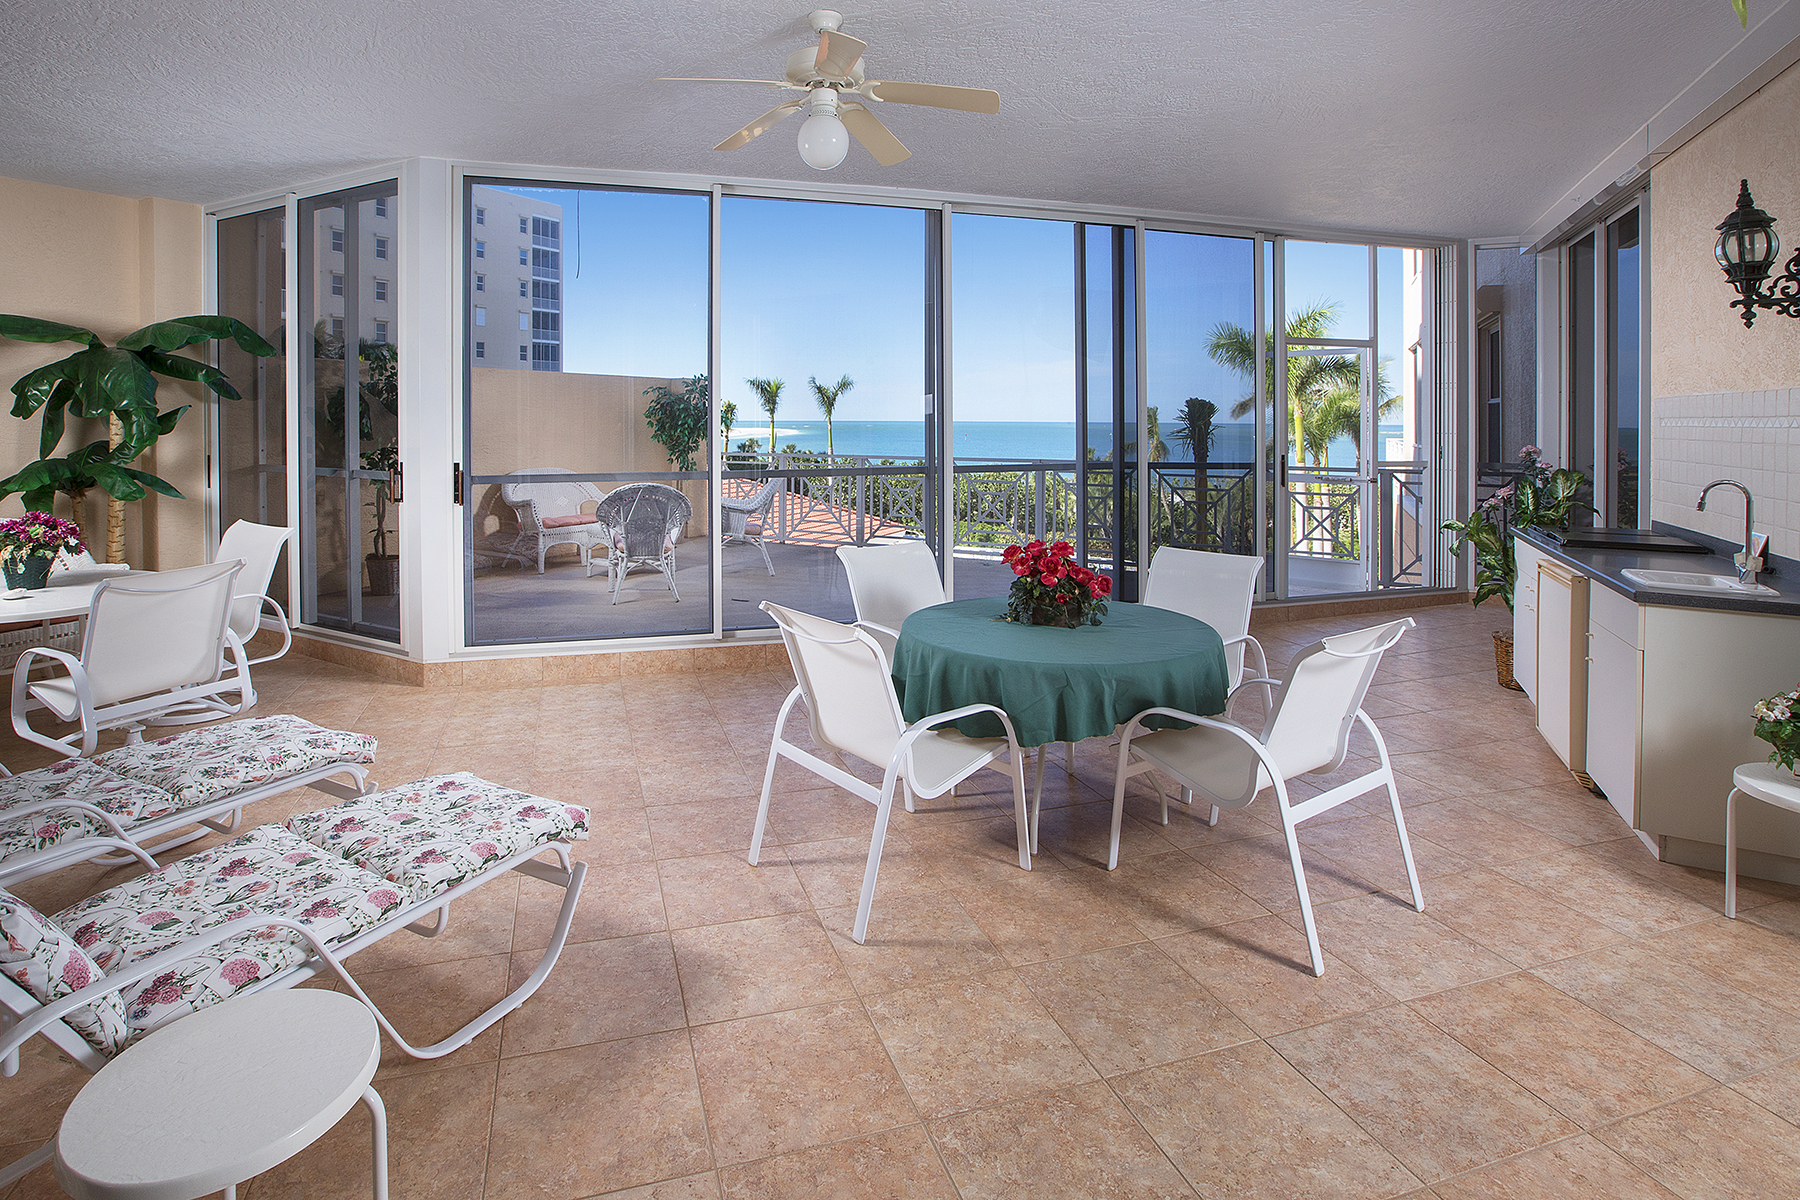 Condominium for Sale at HIDEAWAY BEACH 5000 Royal Marco Way 331, Marco Island, Florida 34145 United States